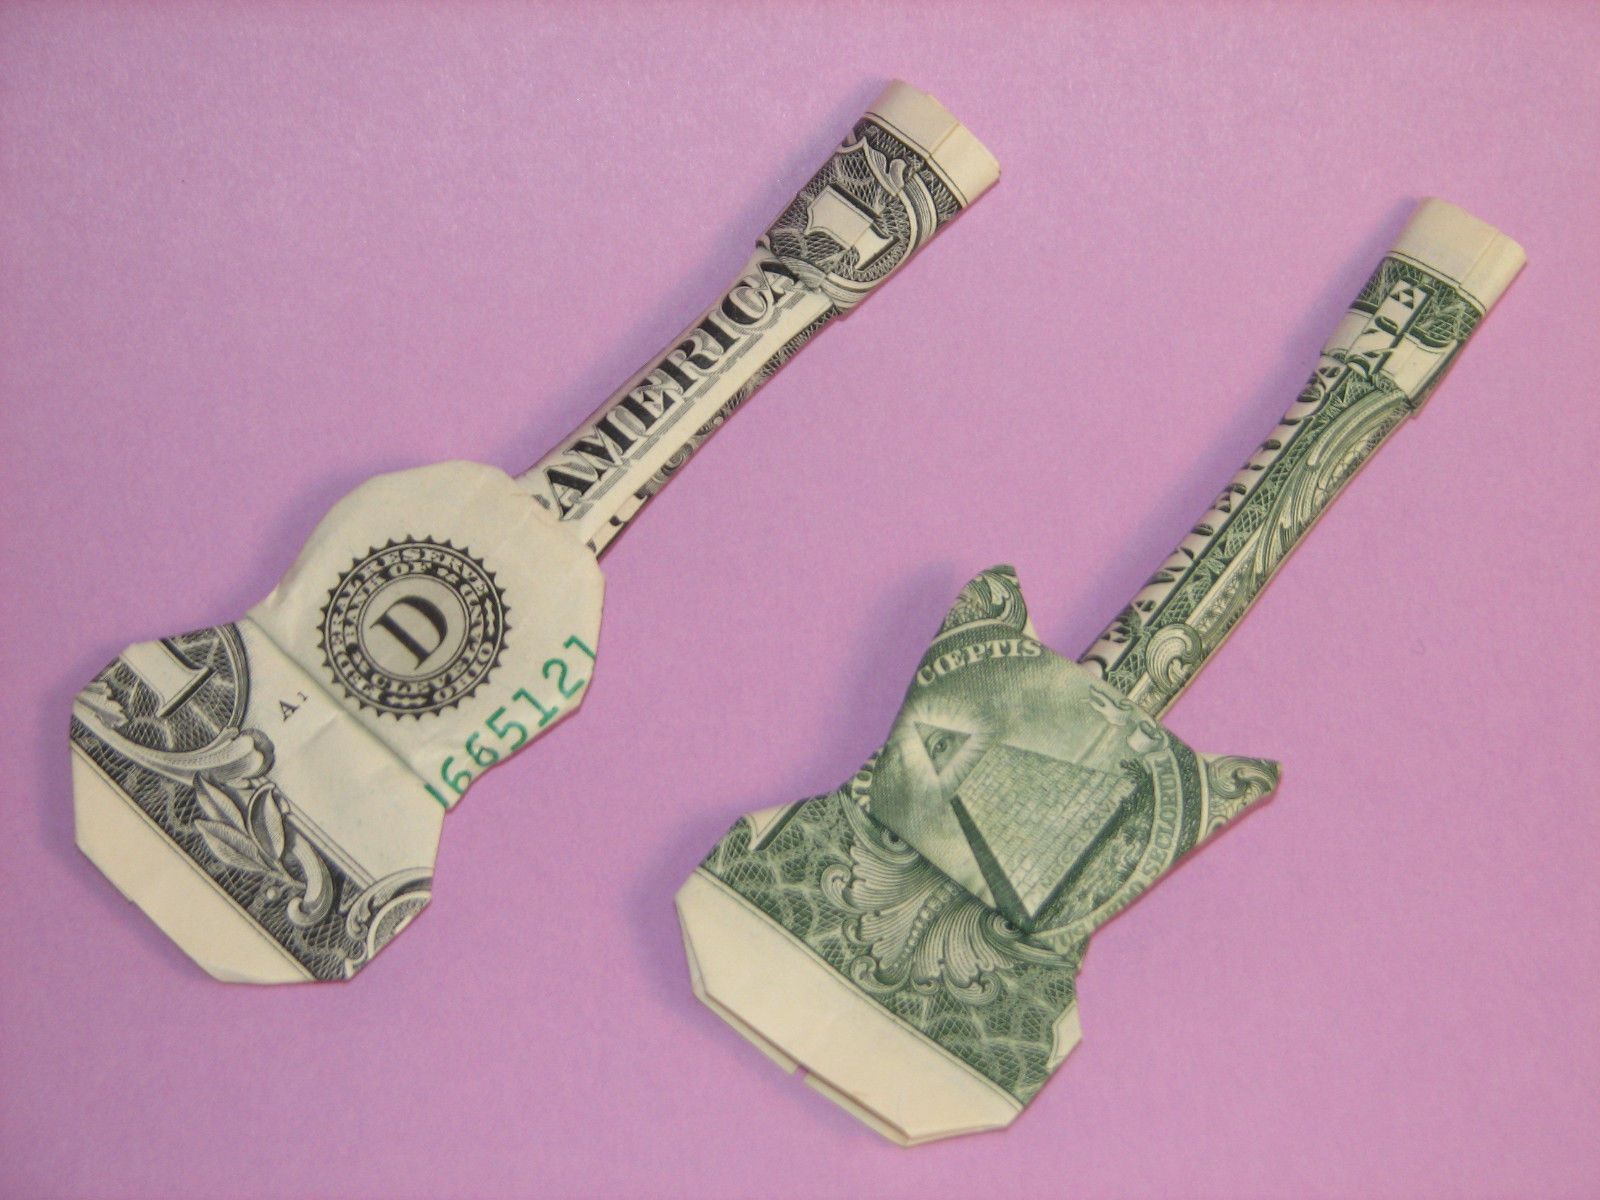 Acoustic & Electric Guitars Money Origami | Crafts ... - photo#46